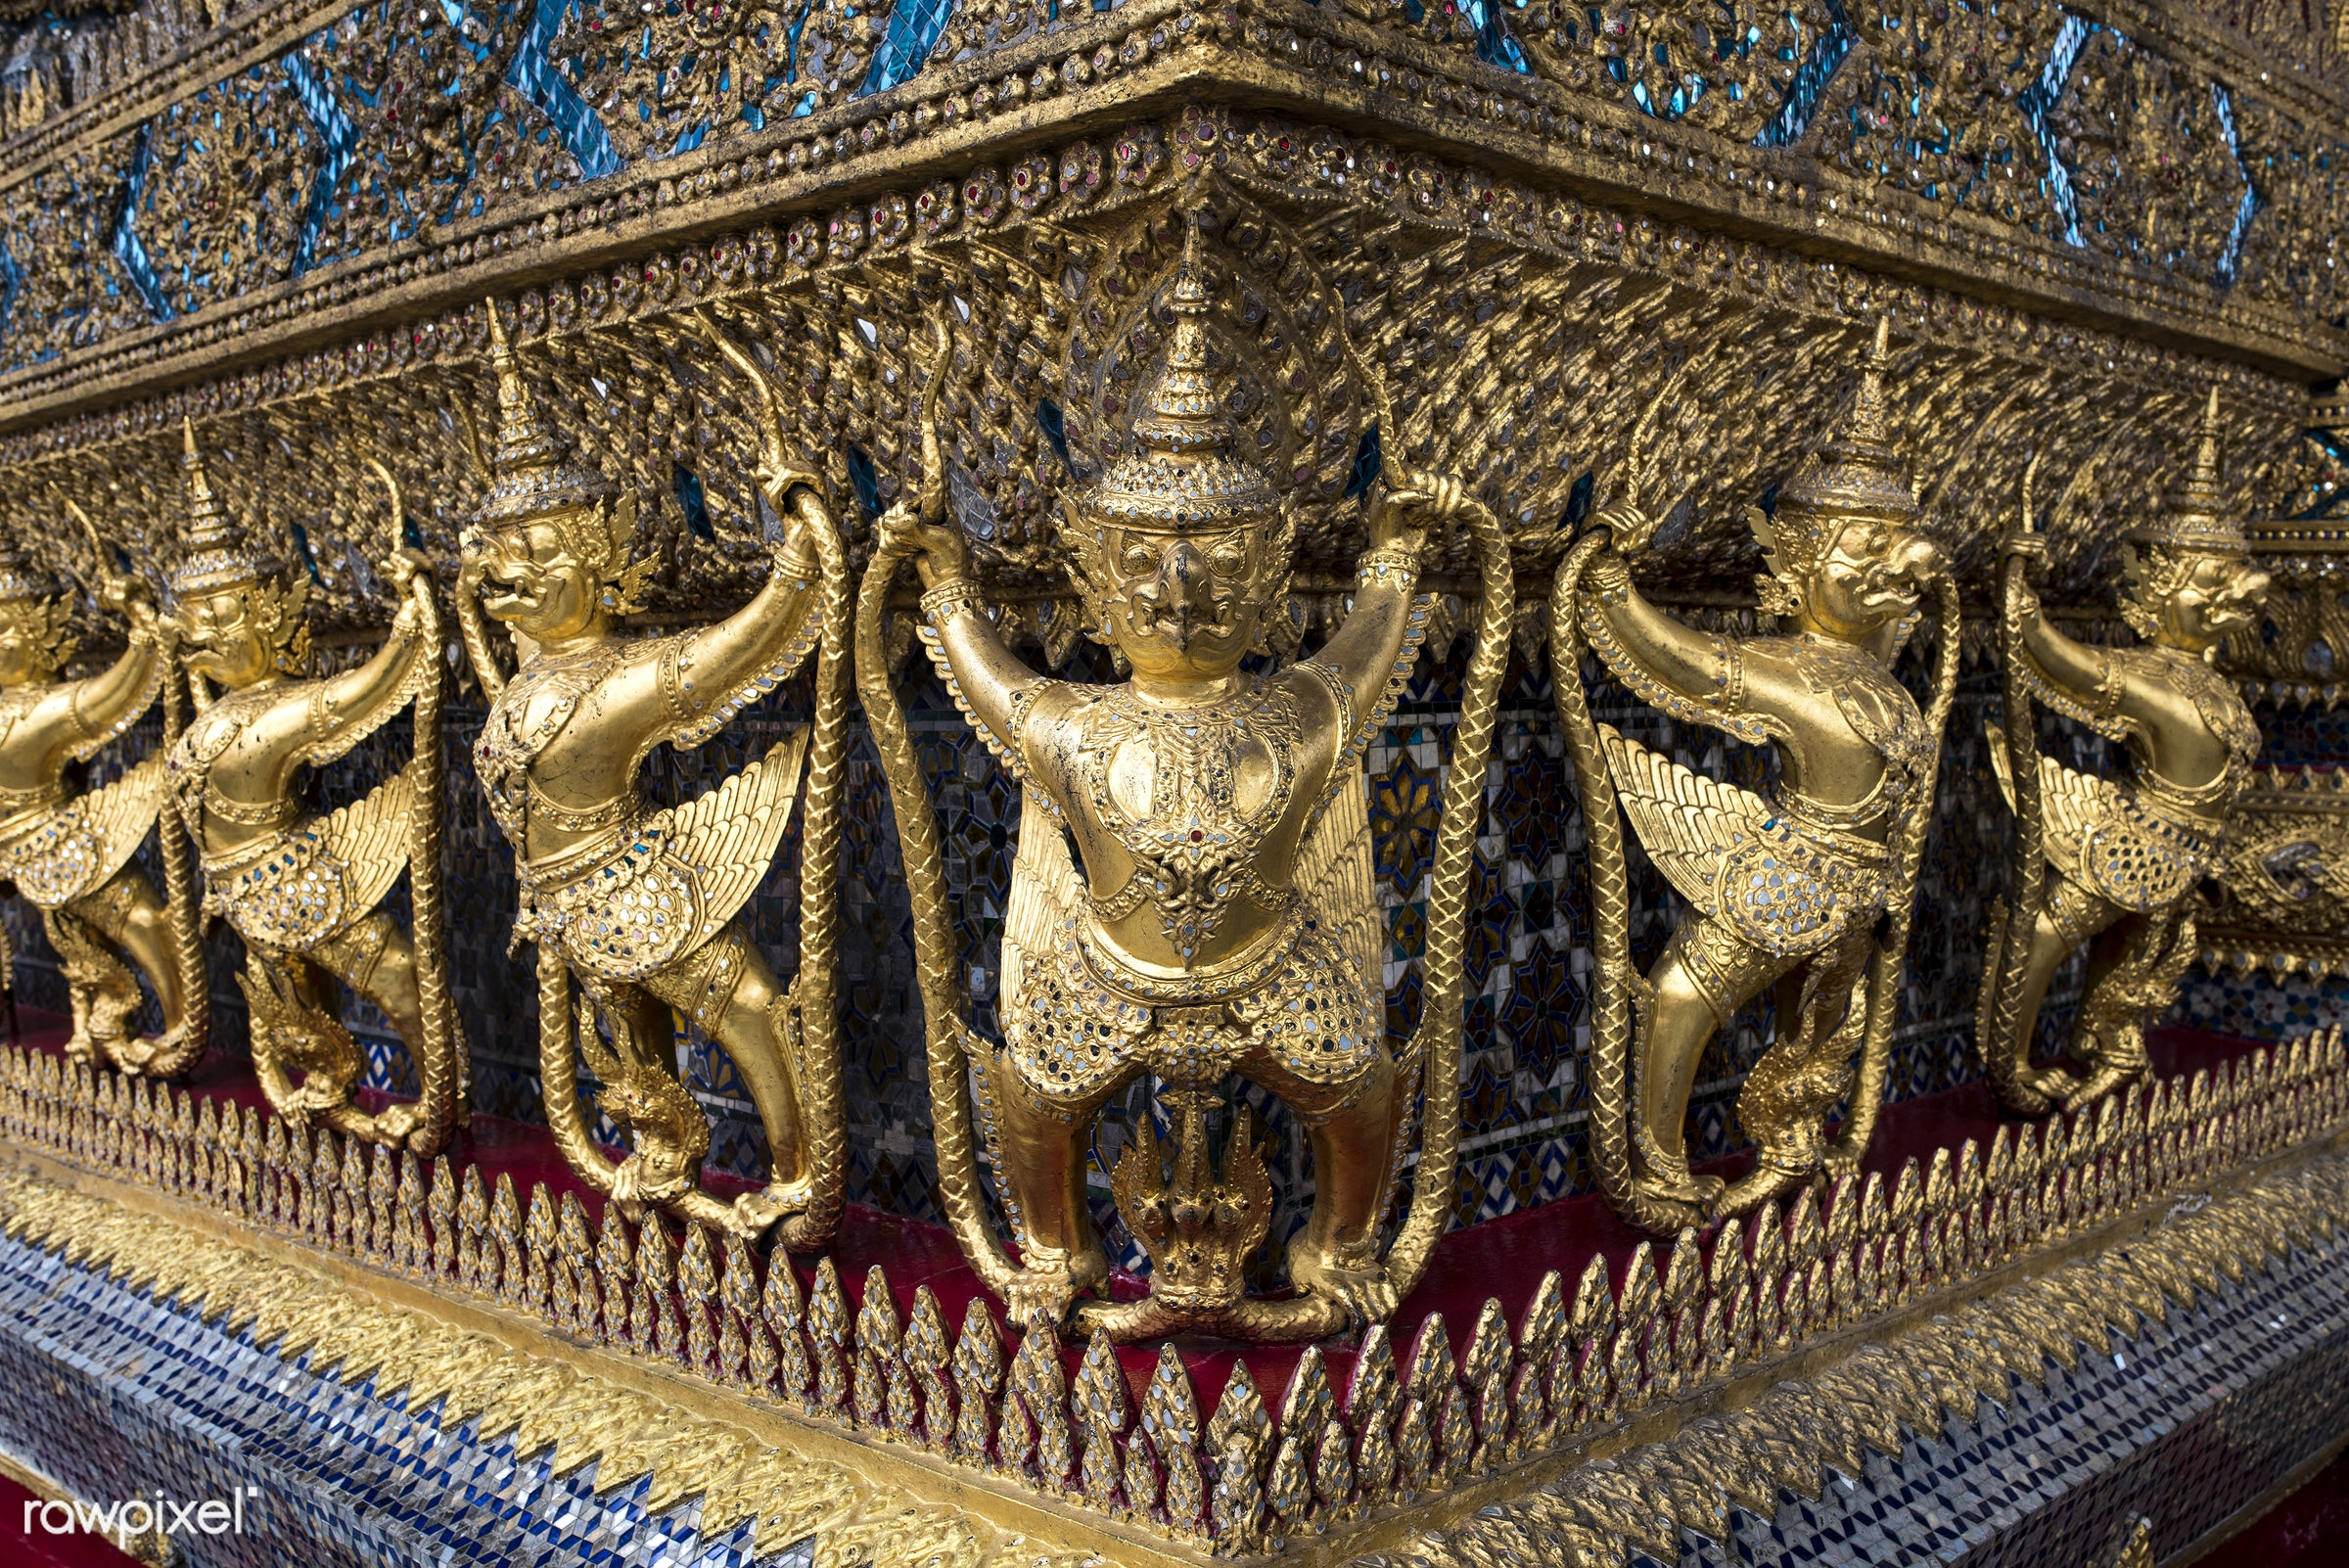 thailand, gold, exotic, thai, angel, art, asia, asian, attraction, bangkok, buddhism, buddhist, colorful, decorated, detail...